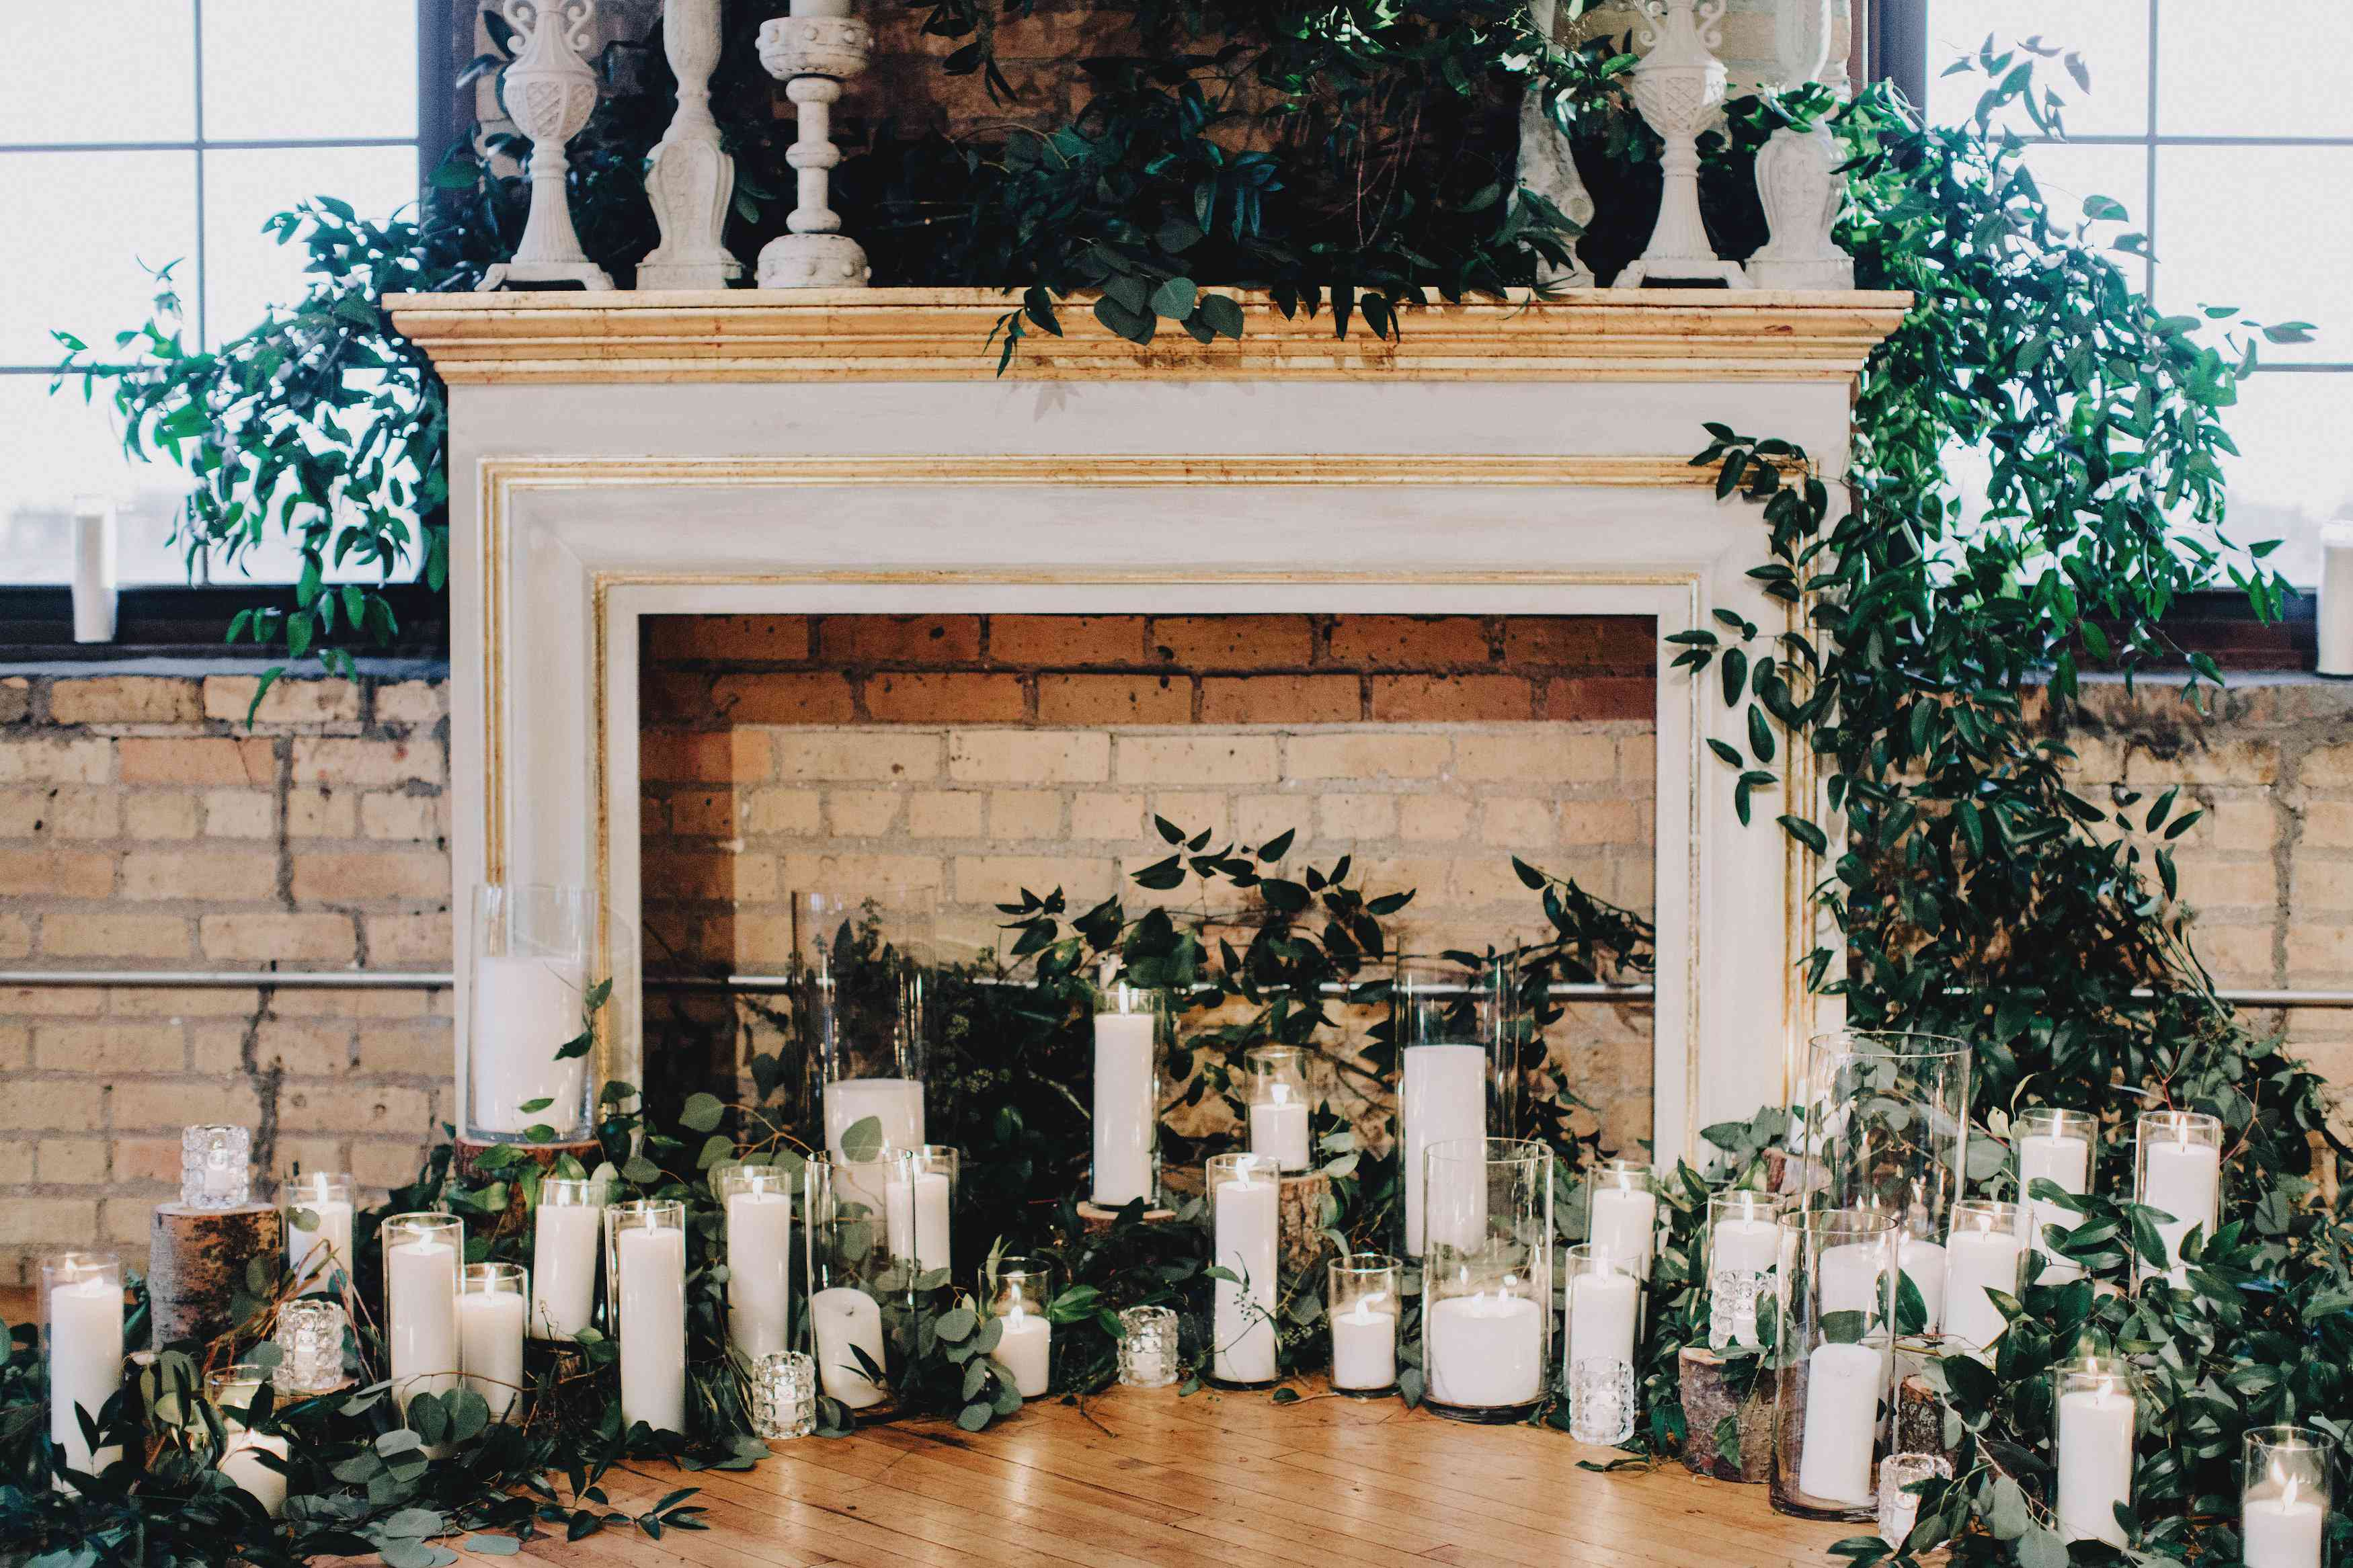 Wedding Altar Ideas 60 Incredible Structures For Your Ceremony